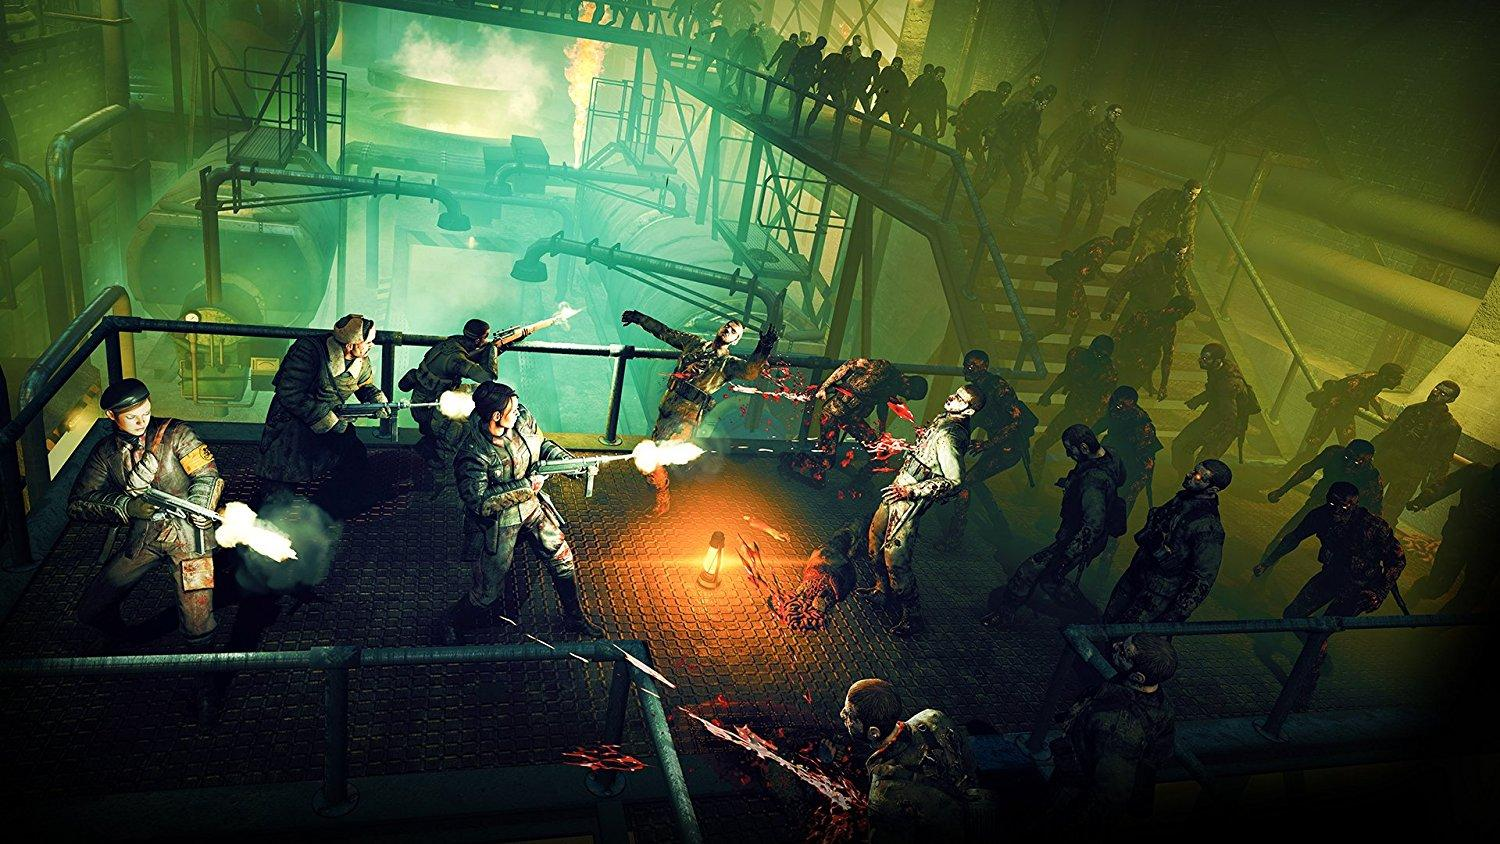 Aspects of the Zombie Army trilogy can be seen clearly in this game